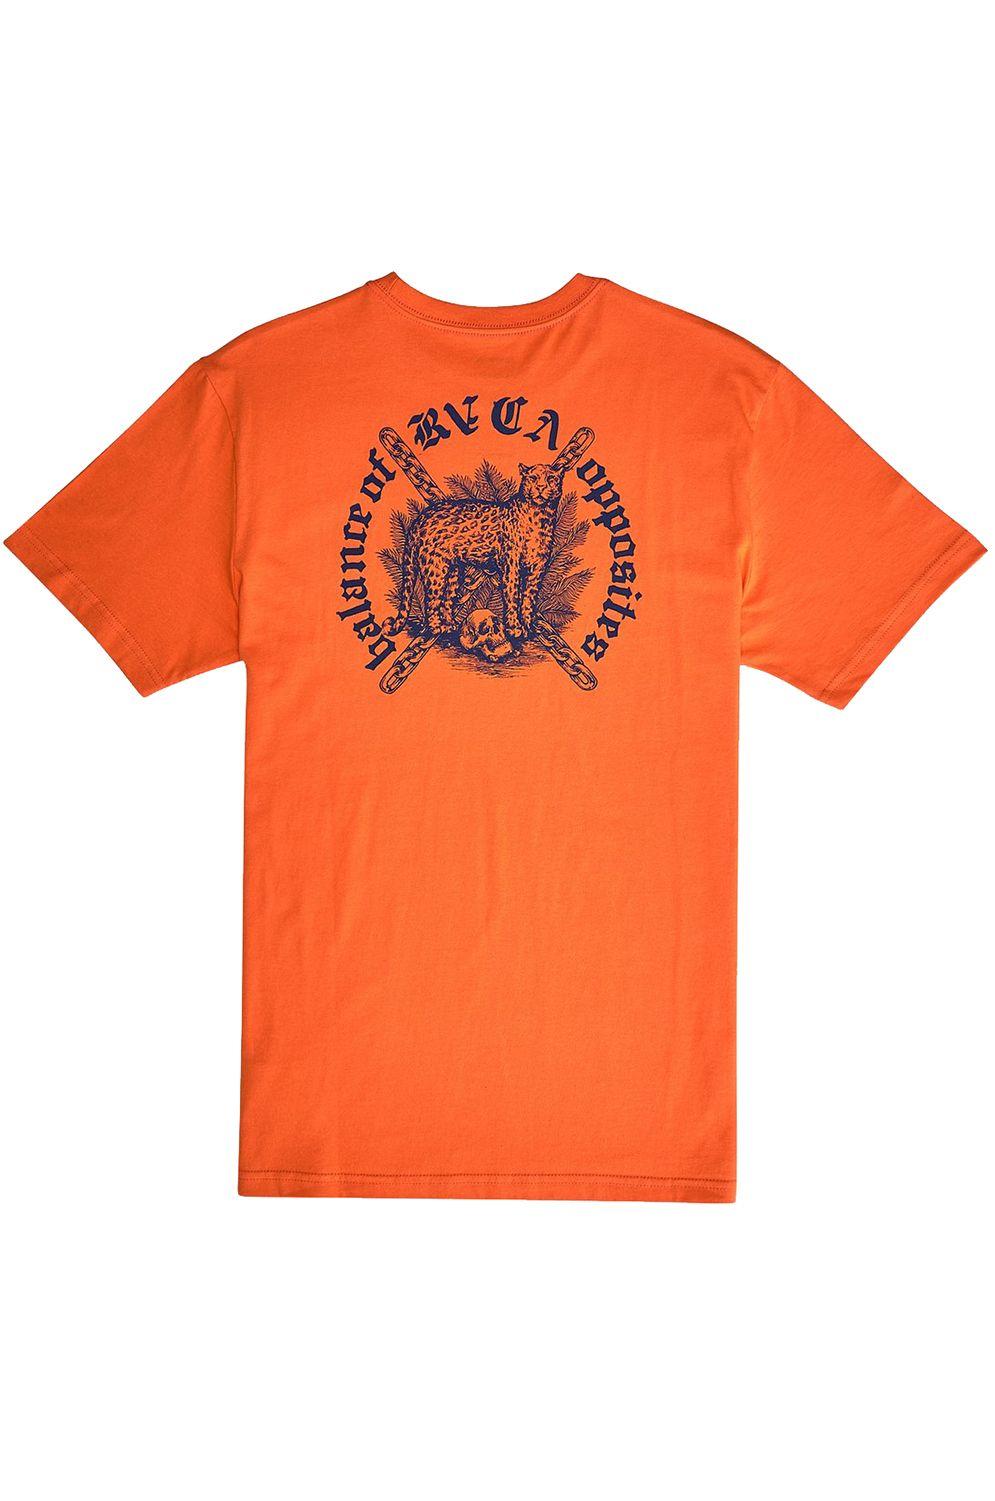 T-Shirt RVCA WILDCAT BENJAMIN JEAN JEAN Bright Orange